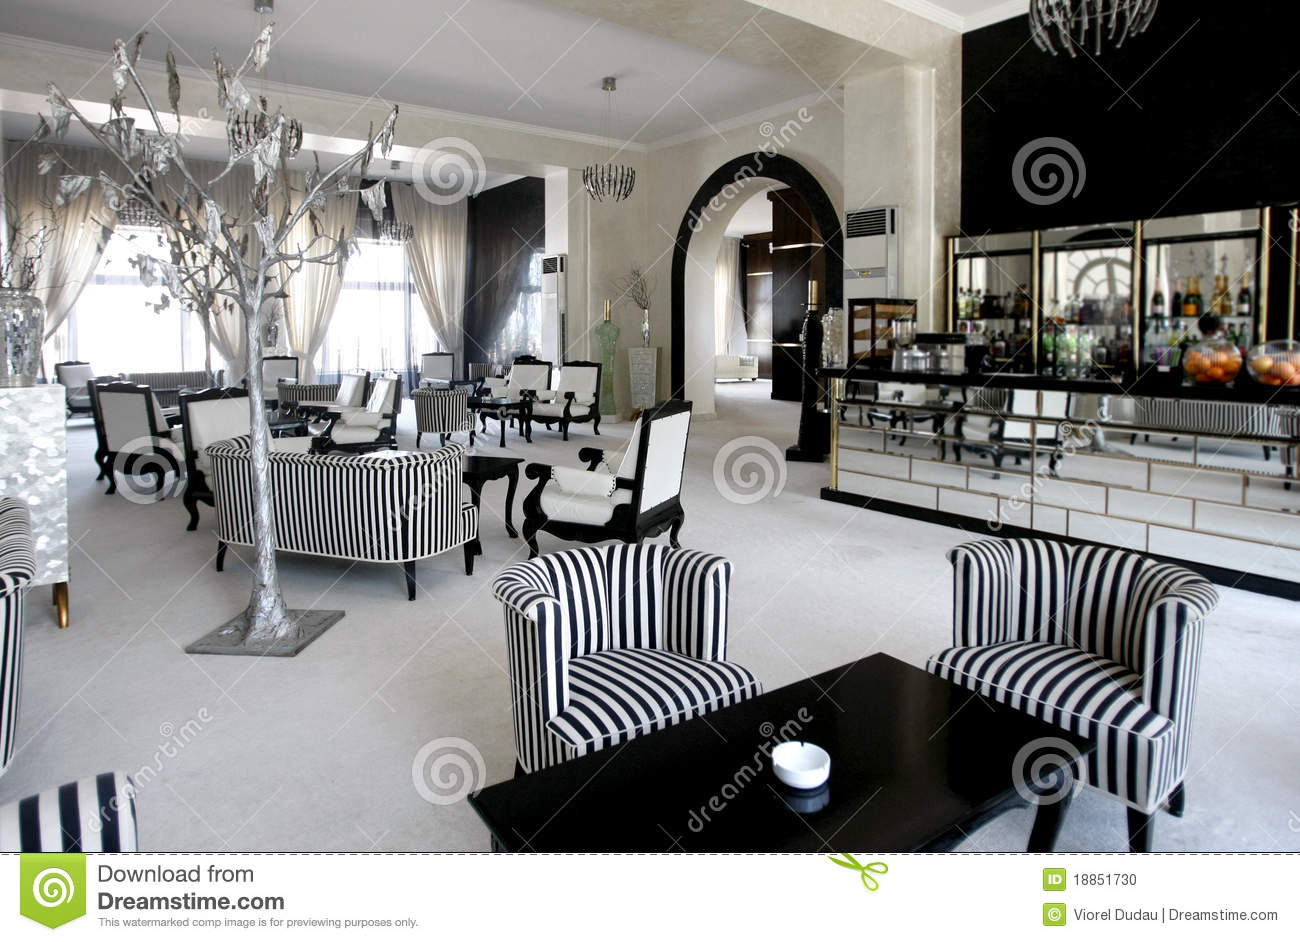 modern luxury sofa 2 seater leather gumtree cafe in expensive hotel stock photo - image: 18851730